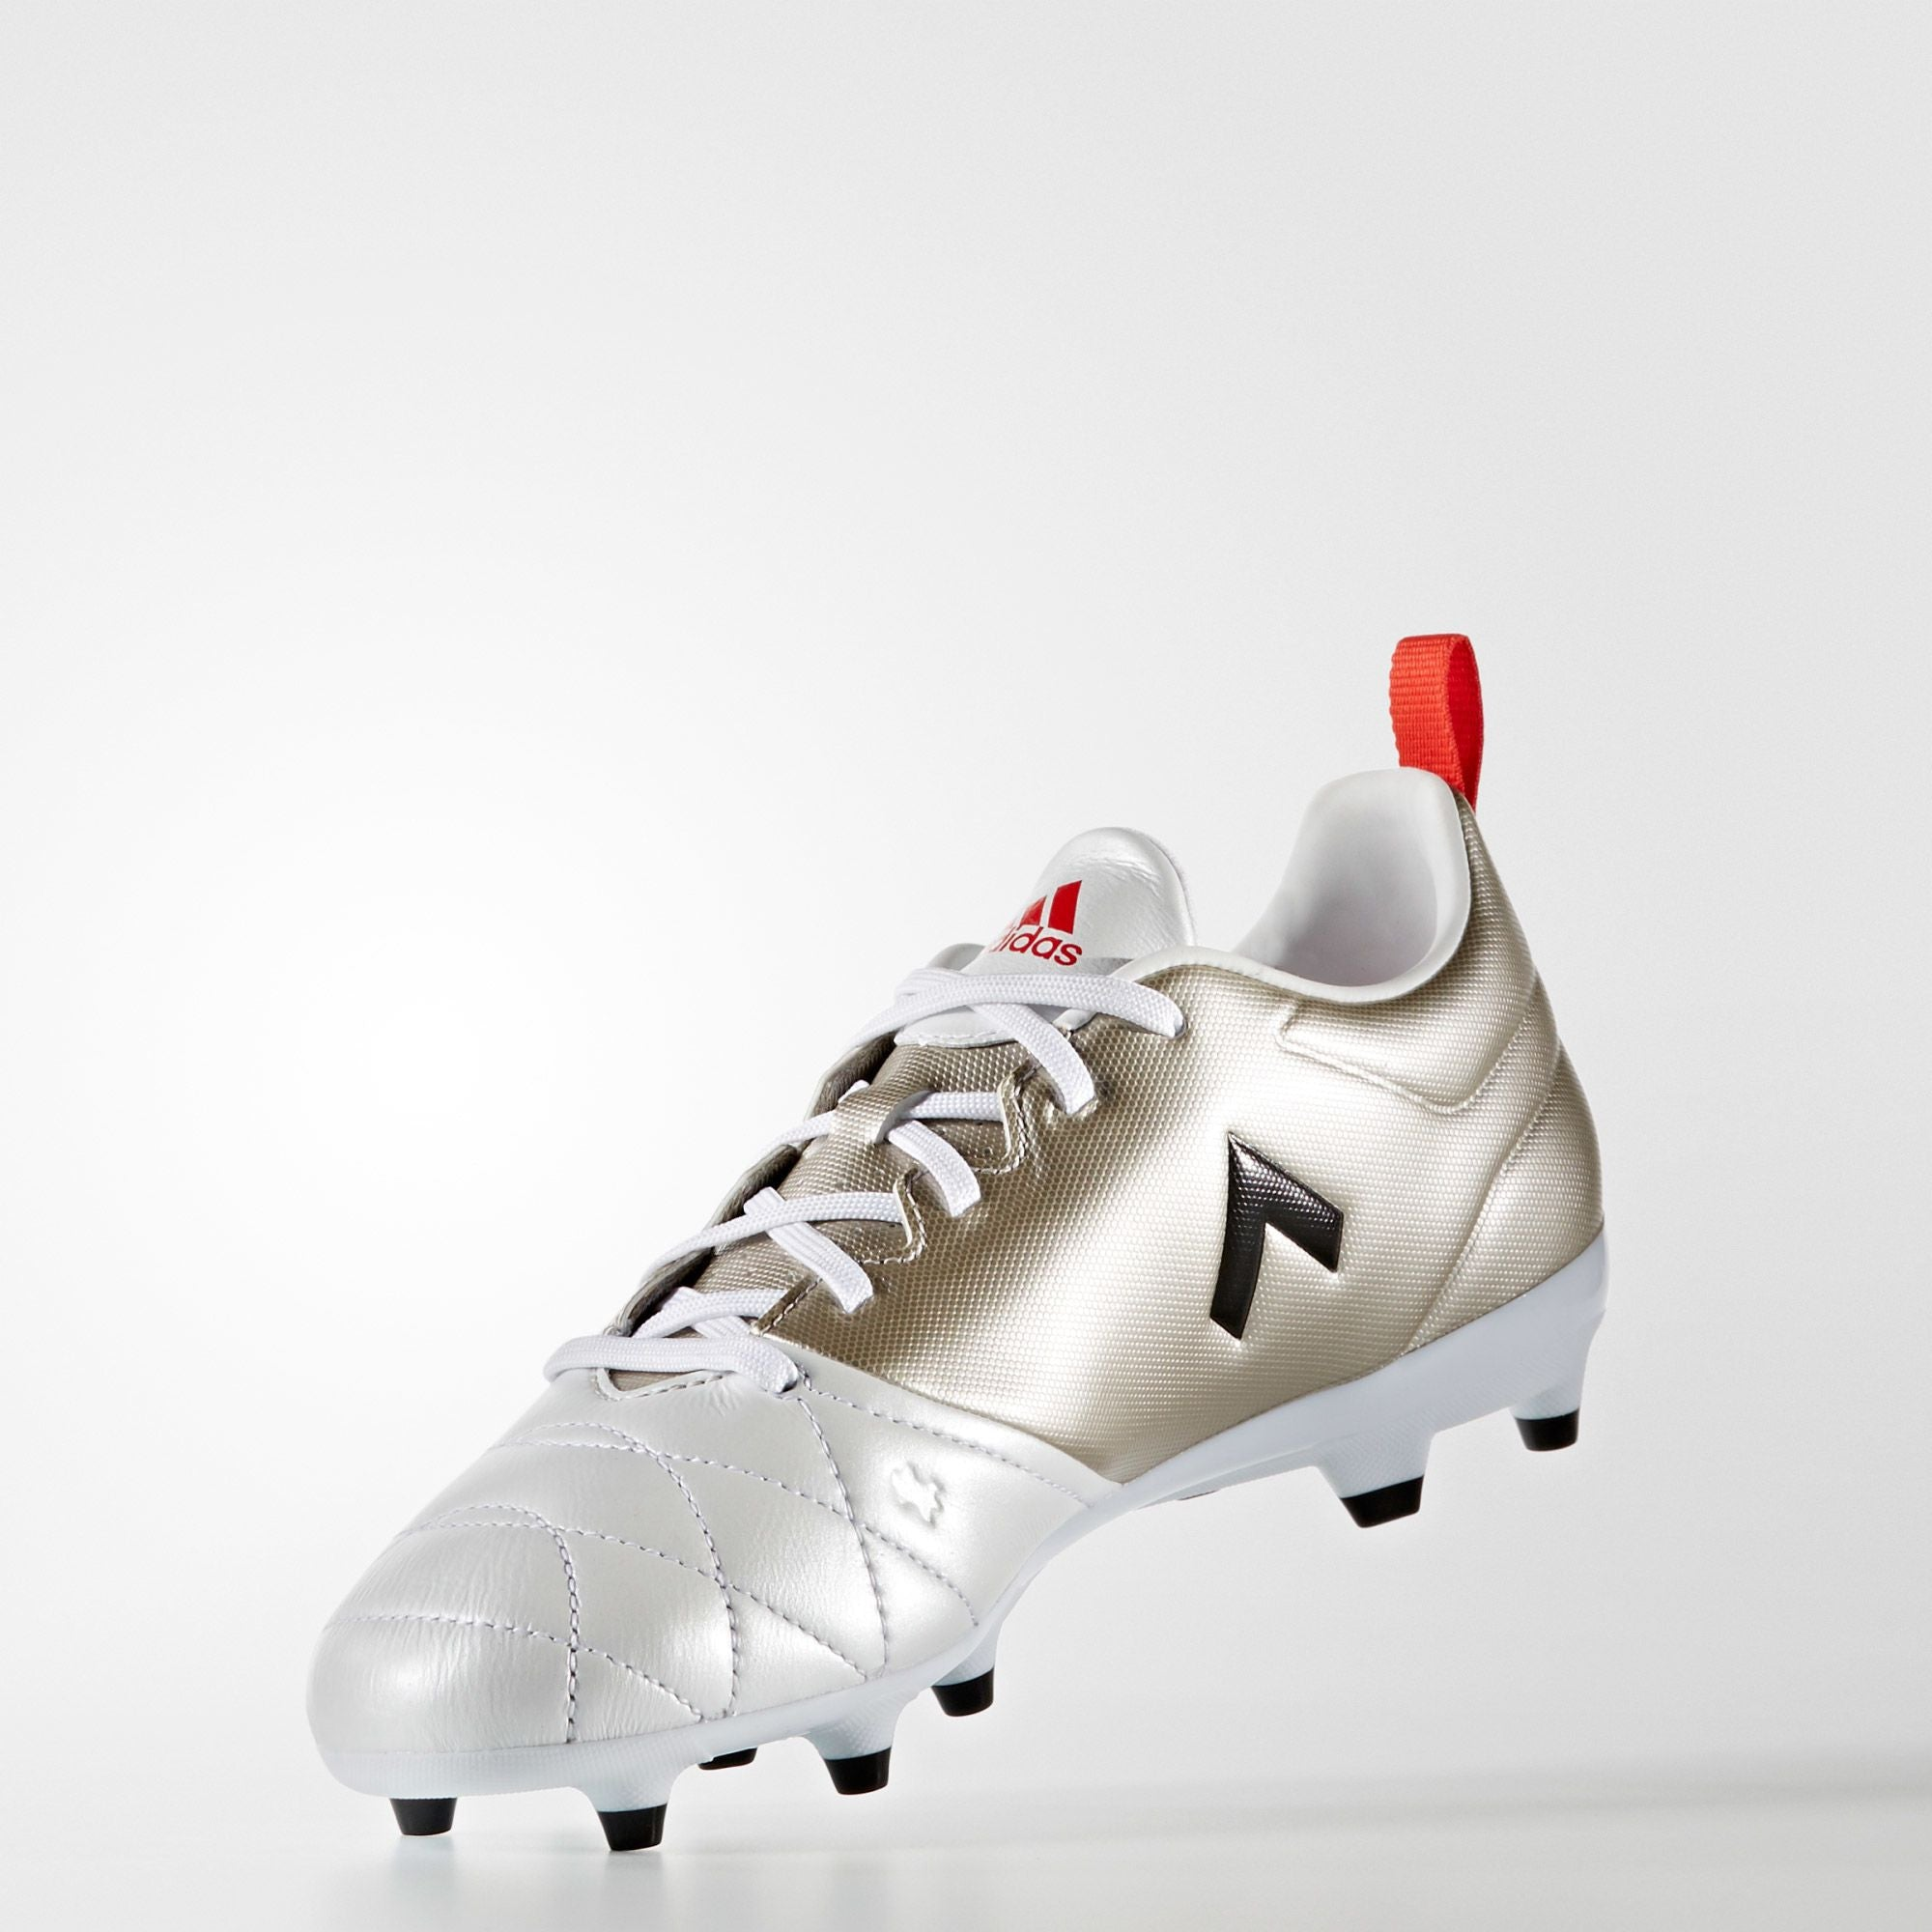 664bd149a0d7 ... new style adidas ace 17.3 firm ground womens football boots 99552 17ac4  ...